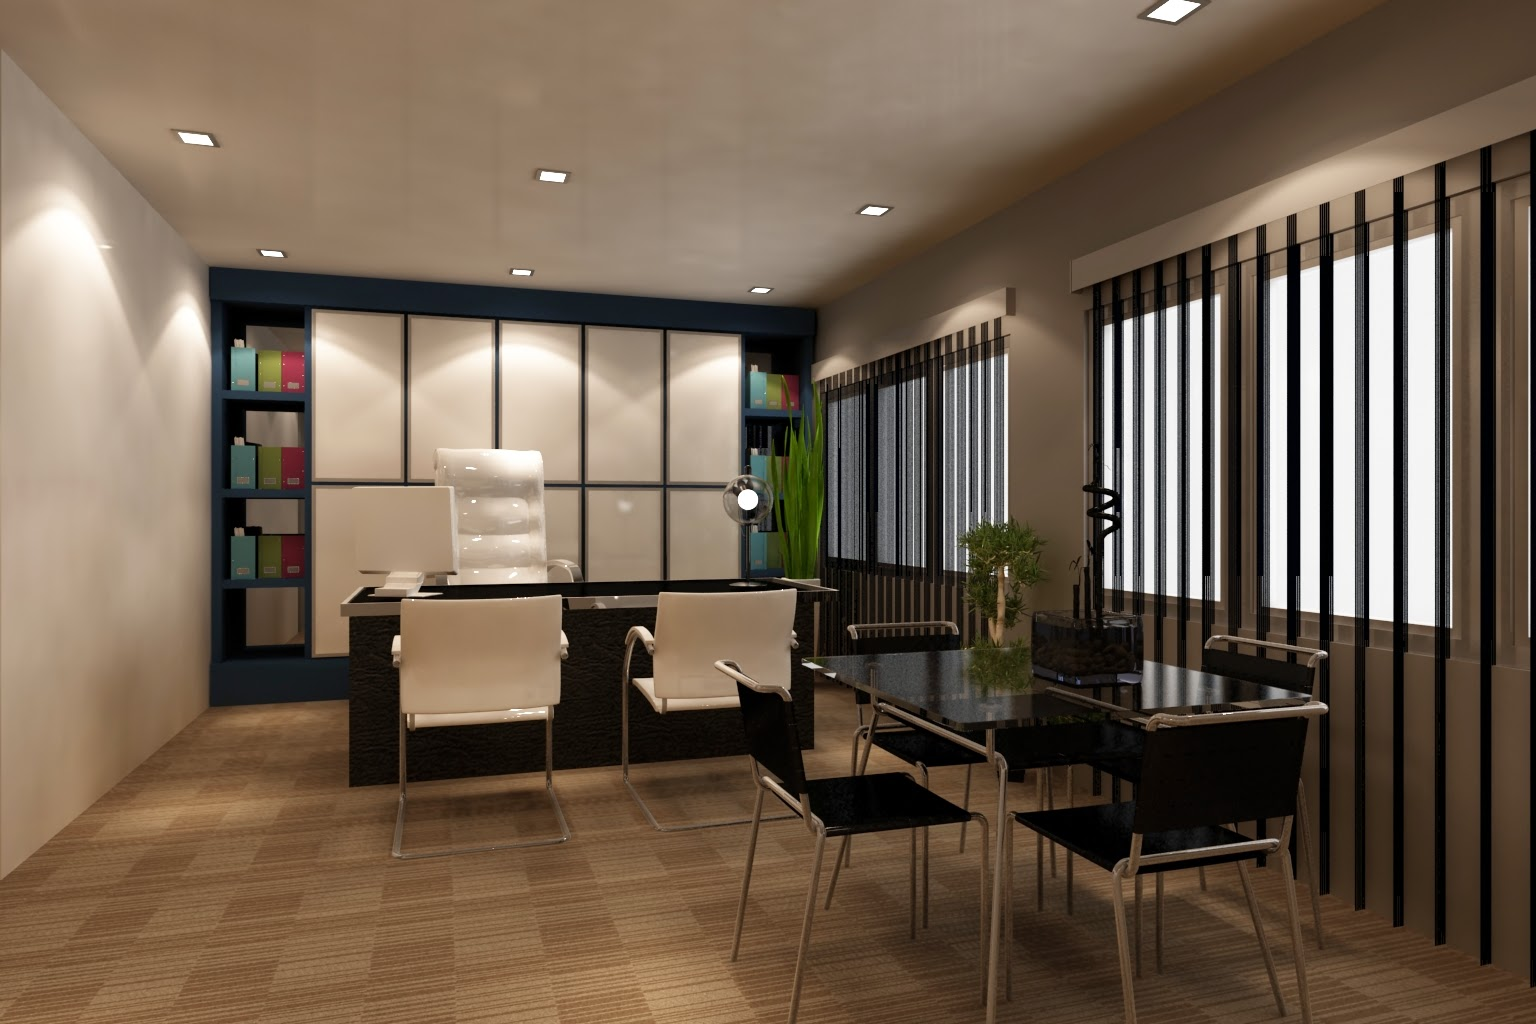 Office space in 3D Model. | Olive Garden Interior